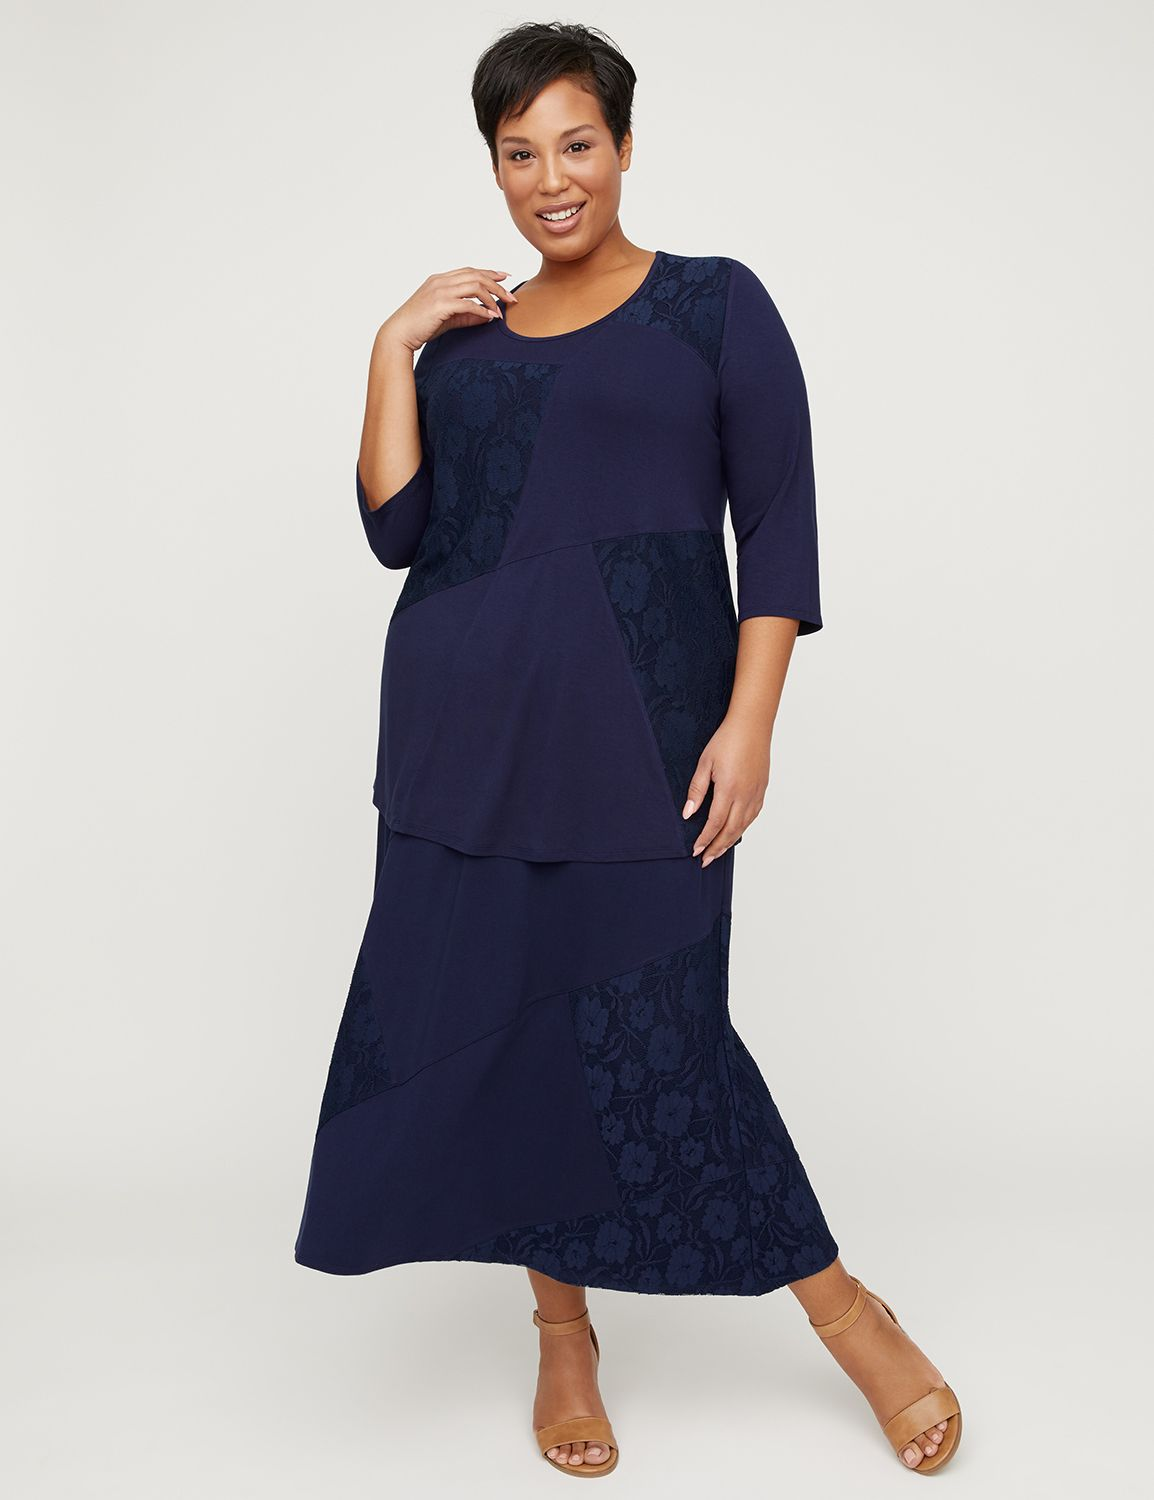 AnyWear Navy Patchwork Lace Tunic